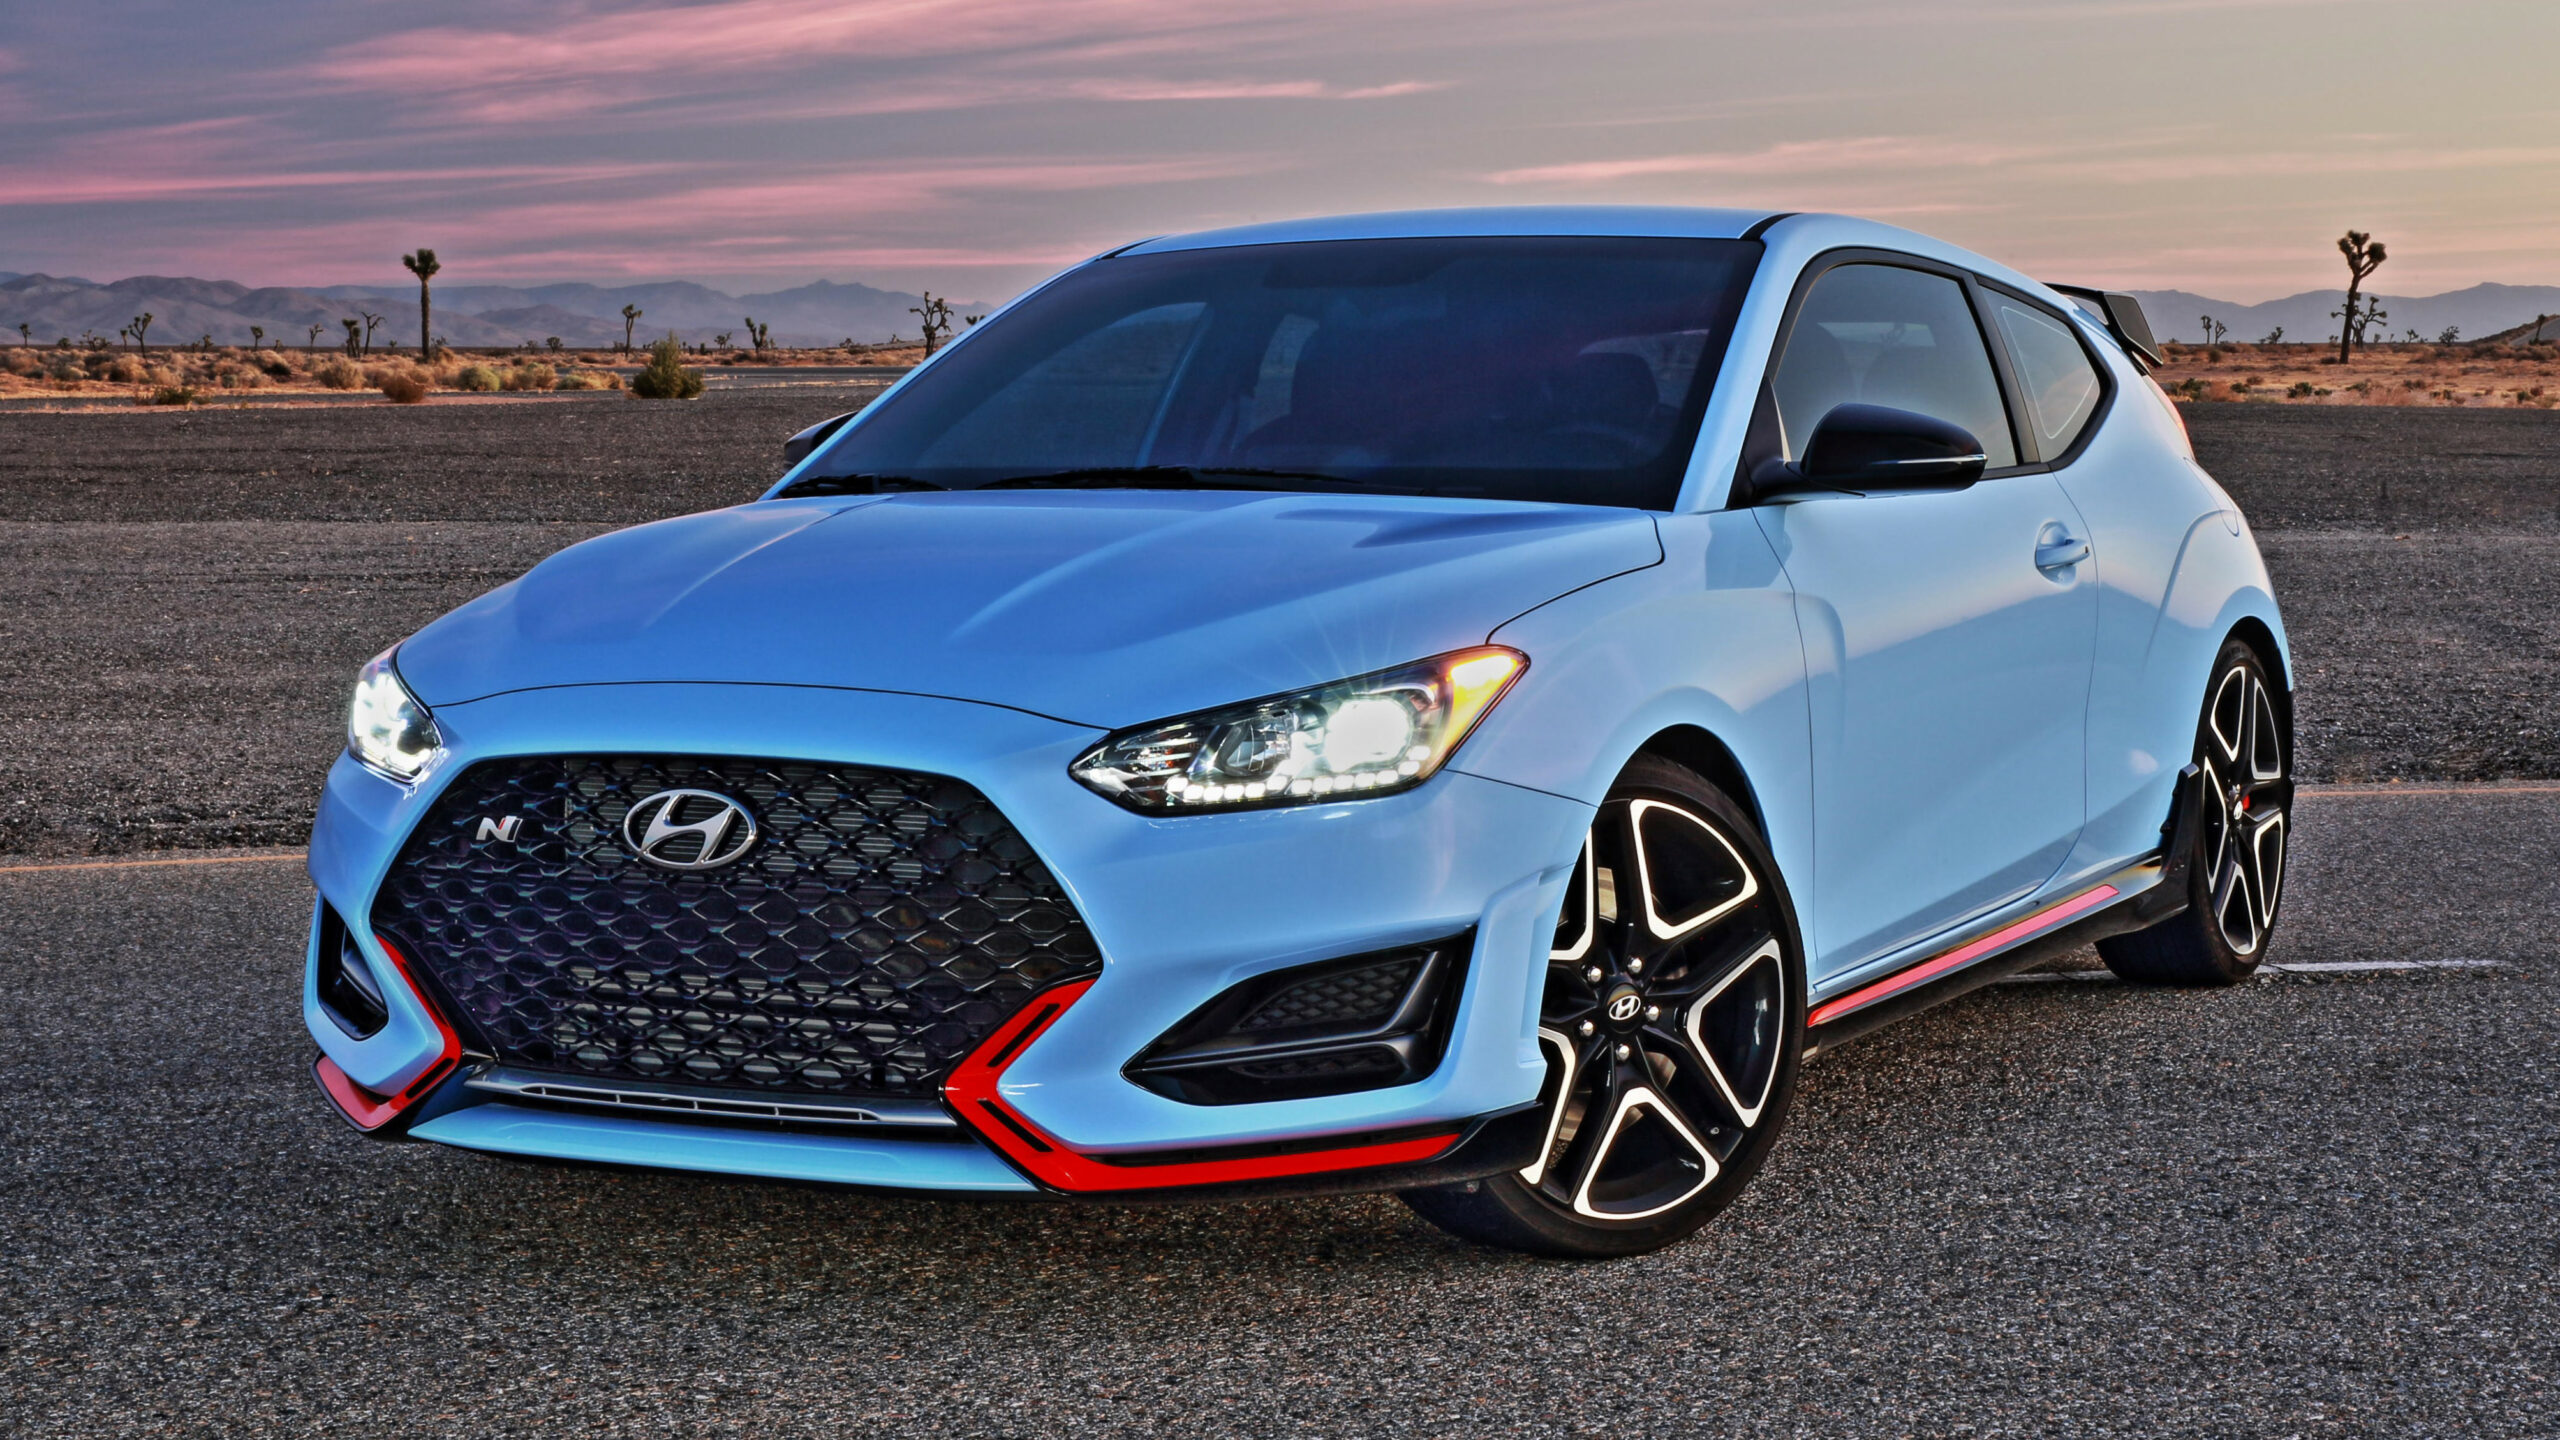 6 Hyundai Veloster N Review | Performance, handling ..